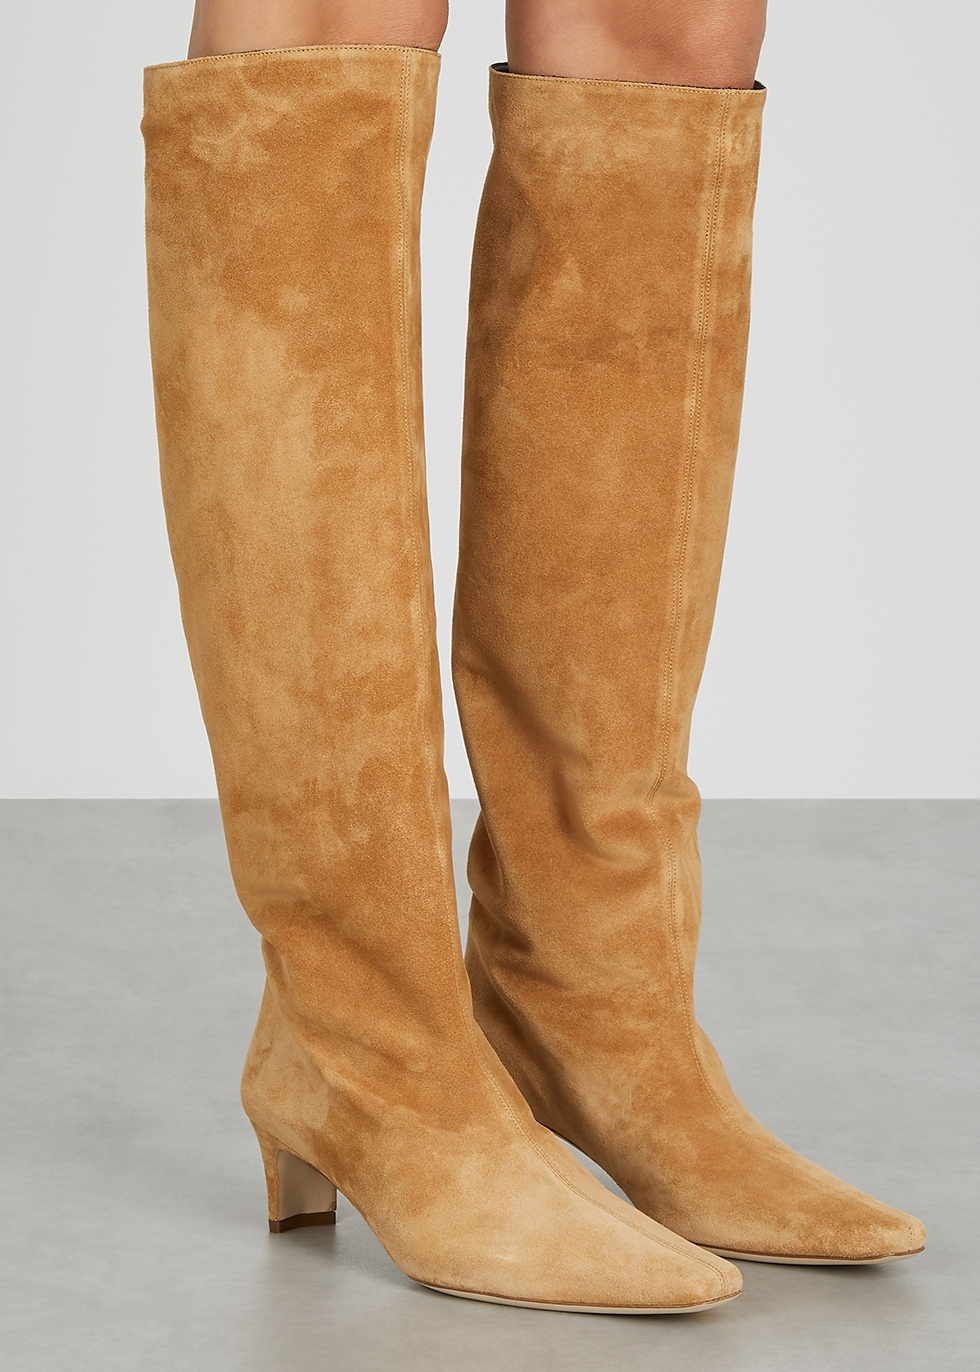 STAUD Wally camel suede knee-high boots